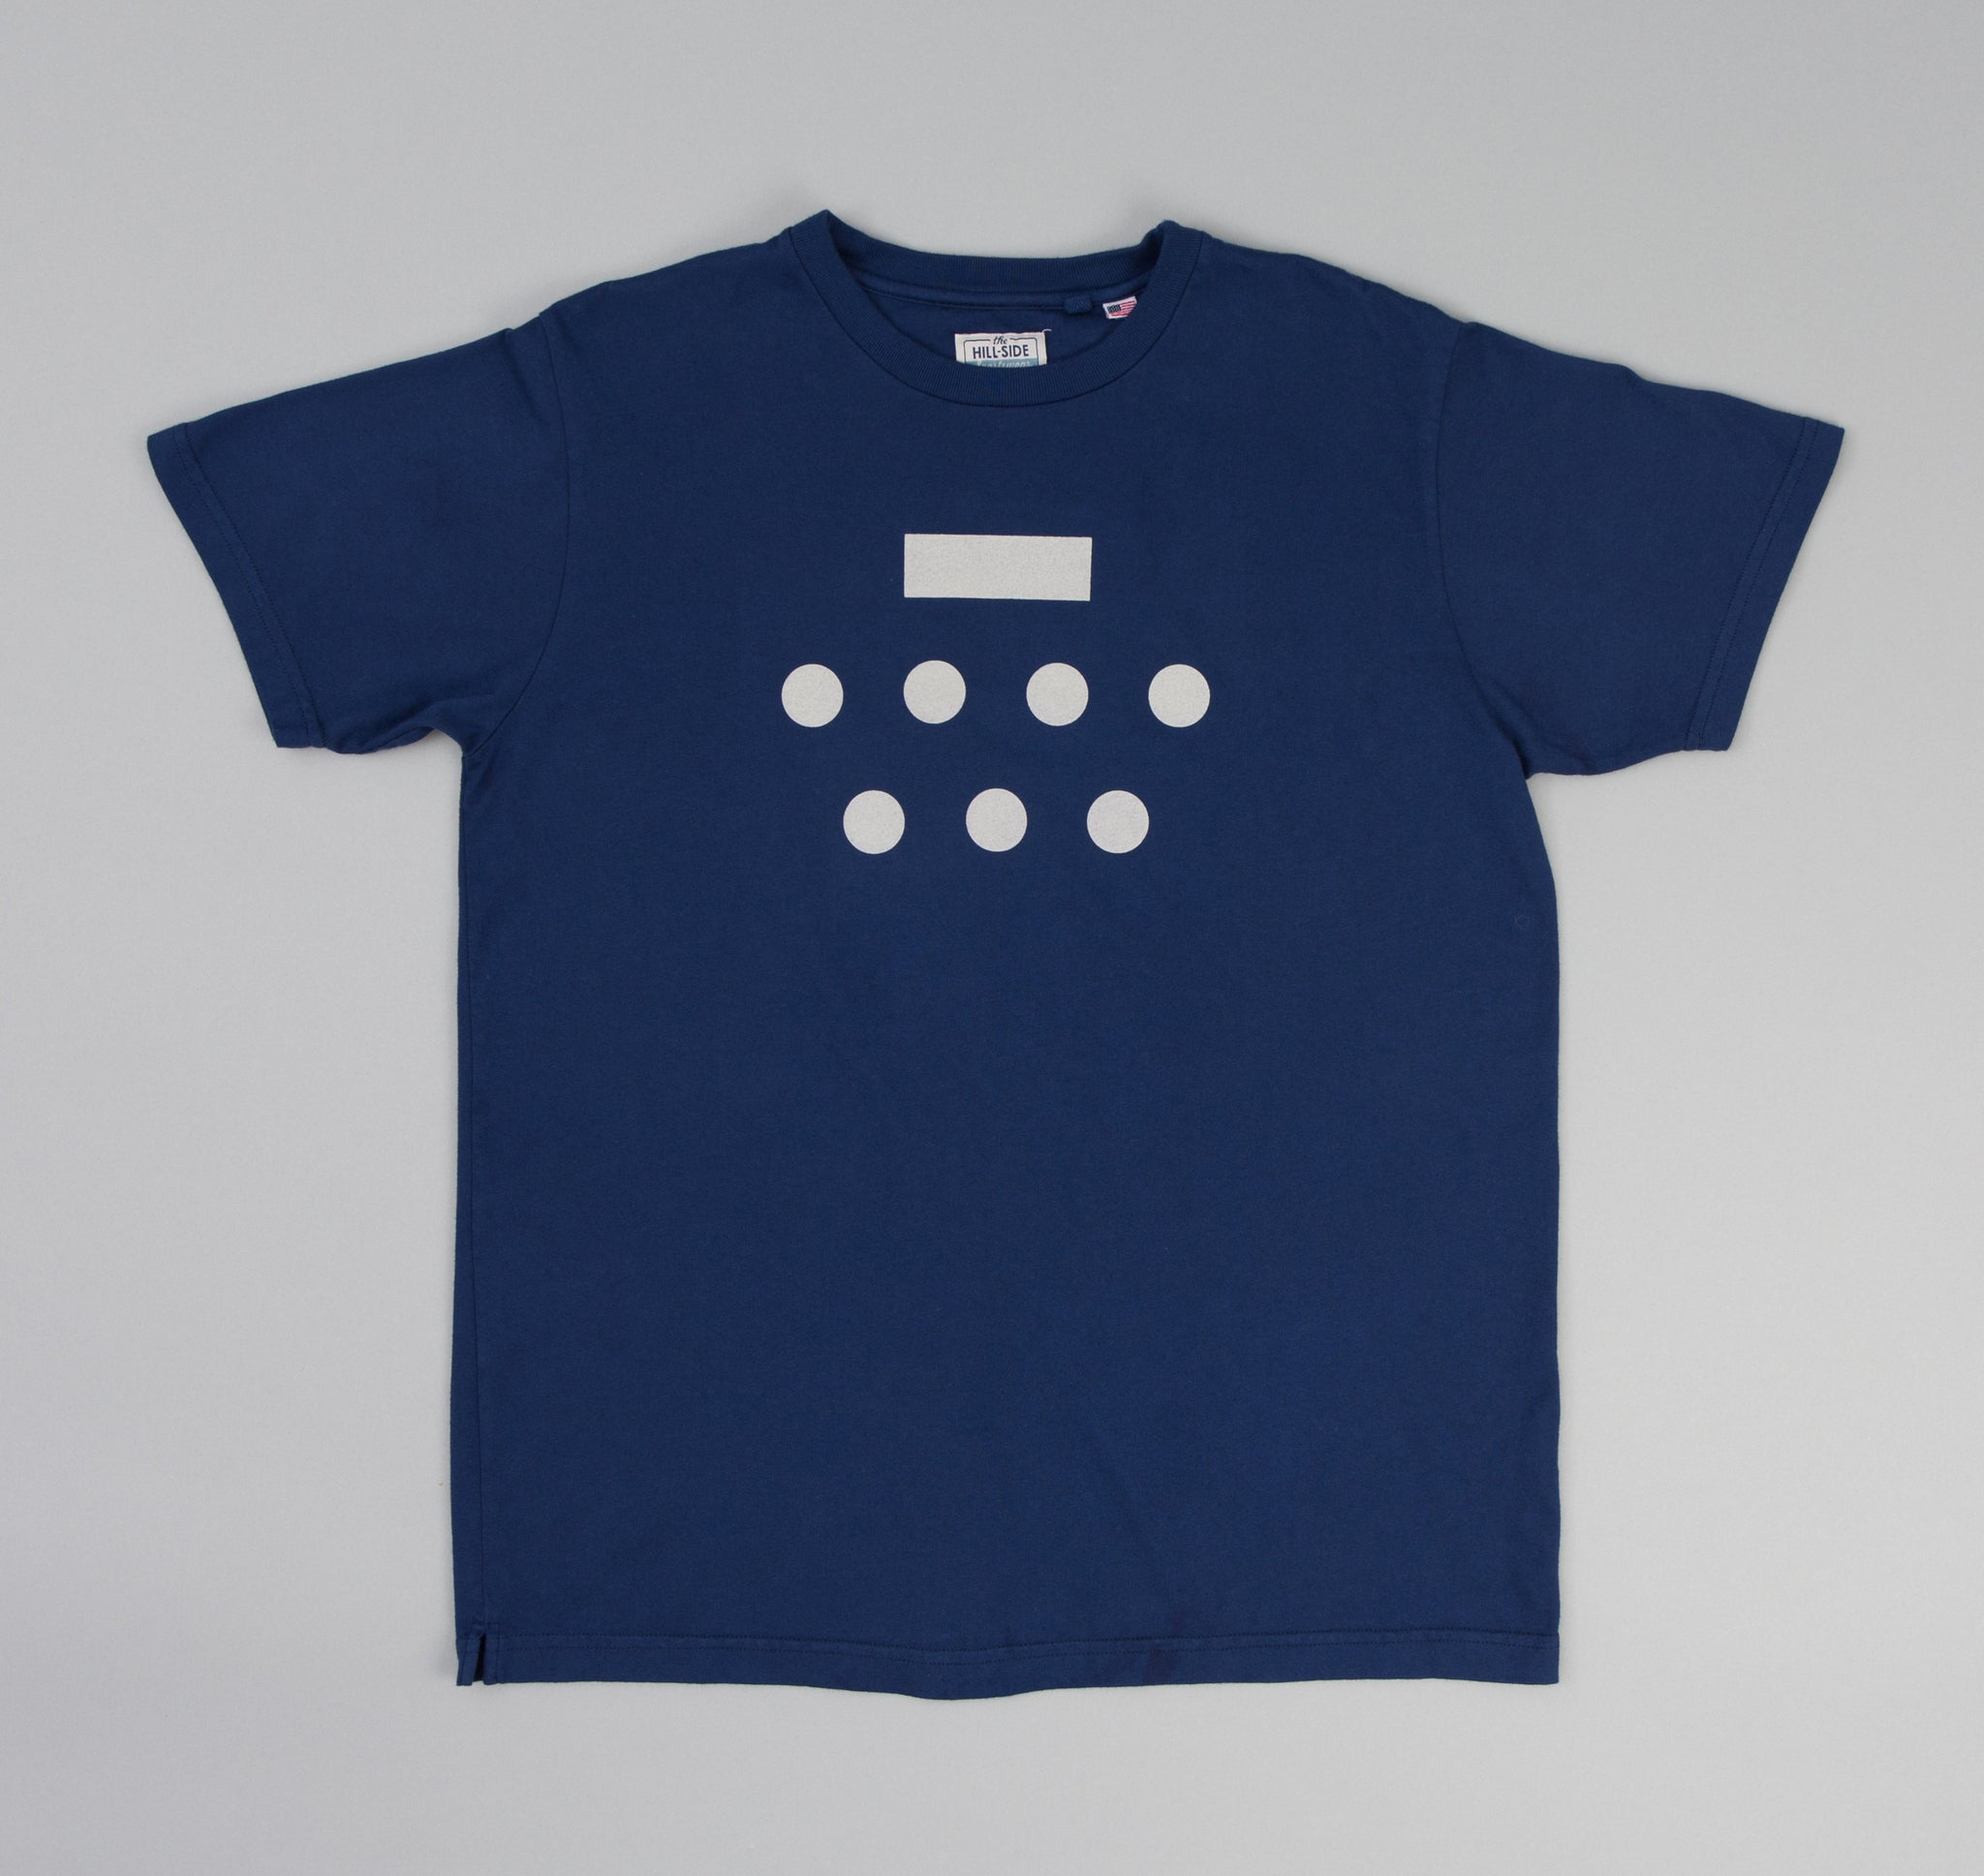 The Hill-Side - Morse Code Printed T-Shirt, Cobalt - TS1-0507 - image 1